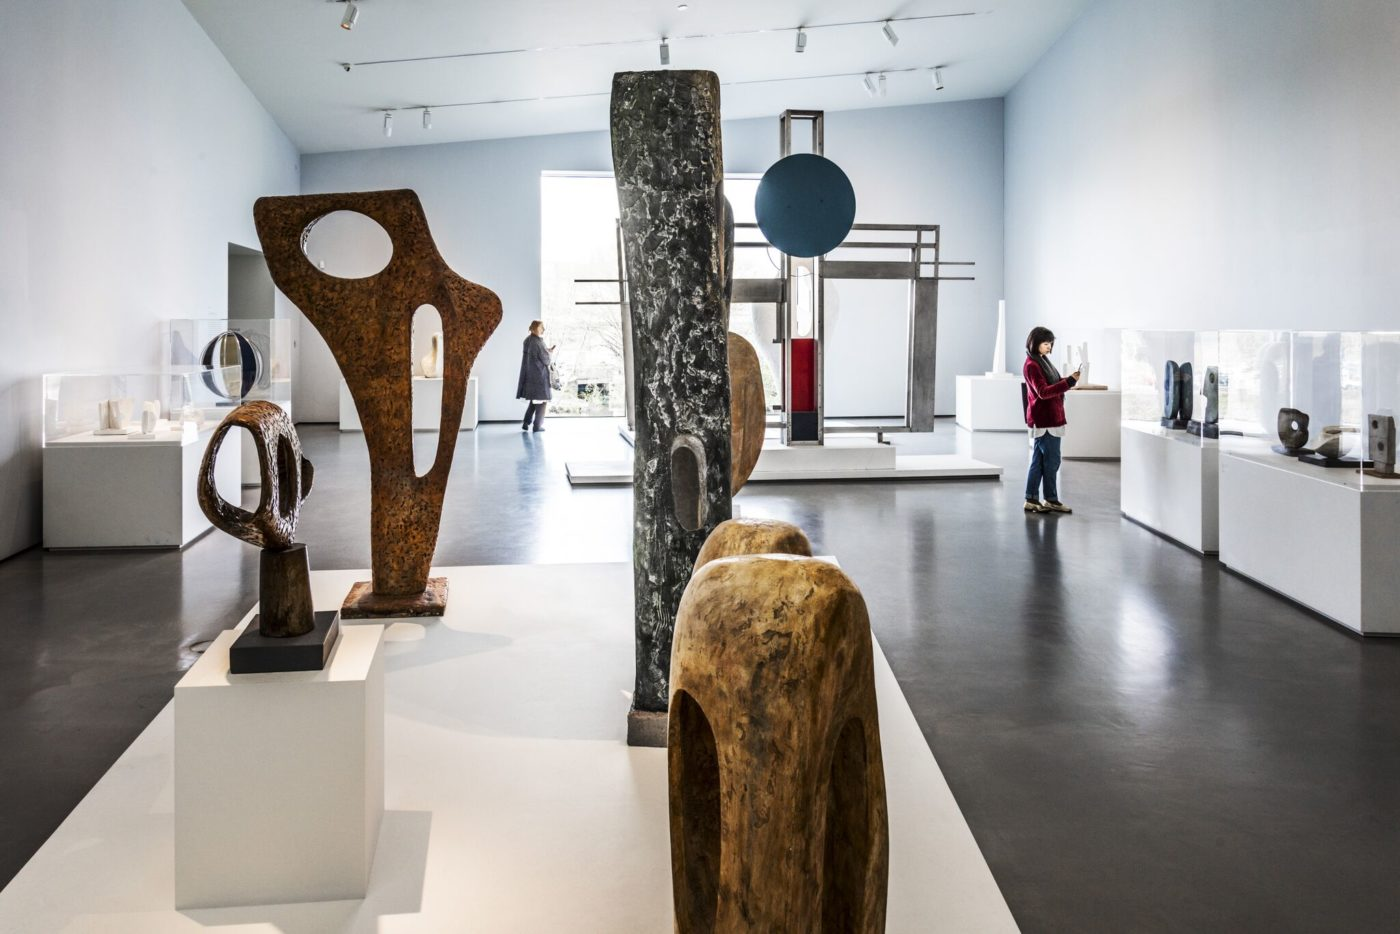 View of gallery interior, showing modern sculpture